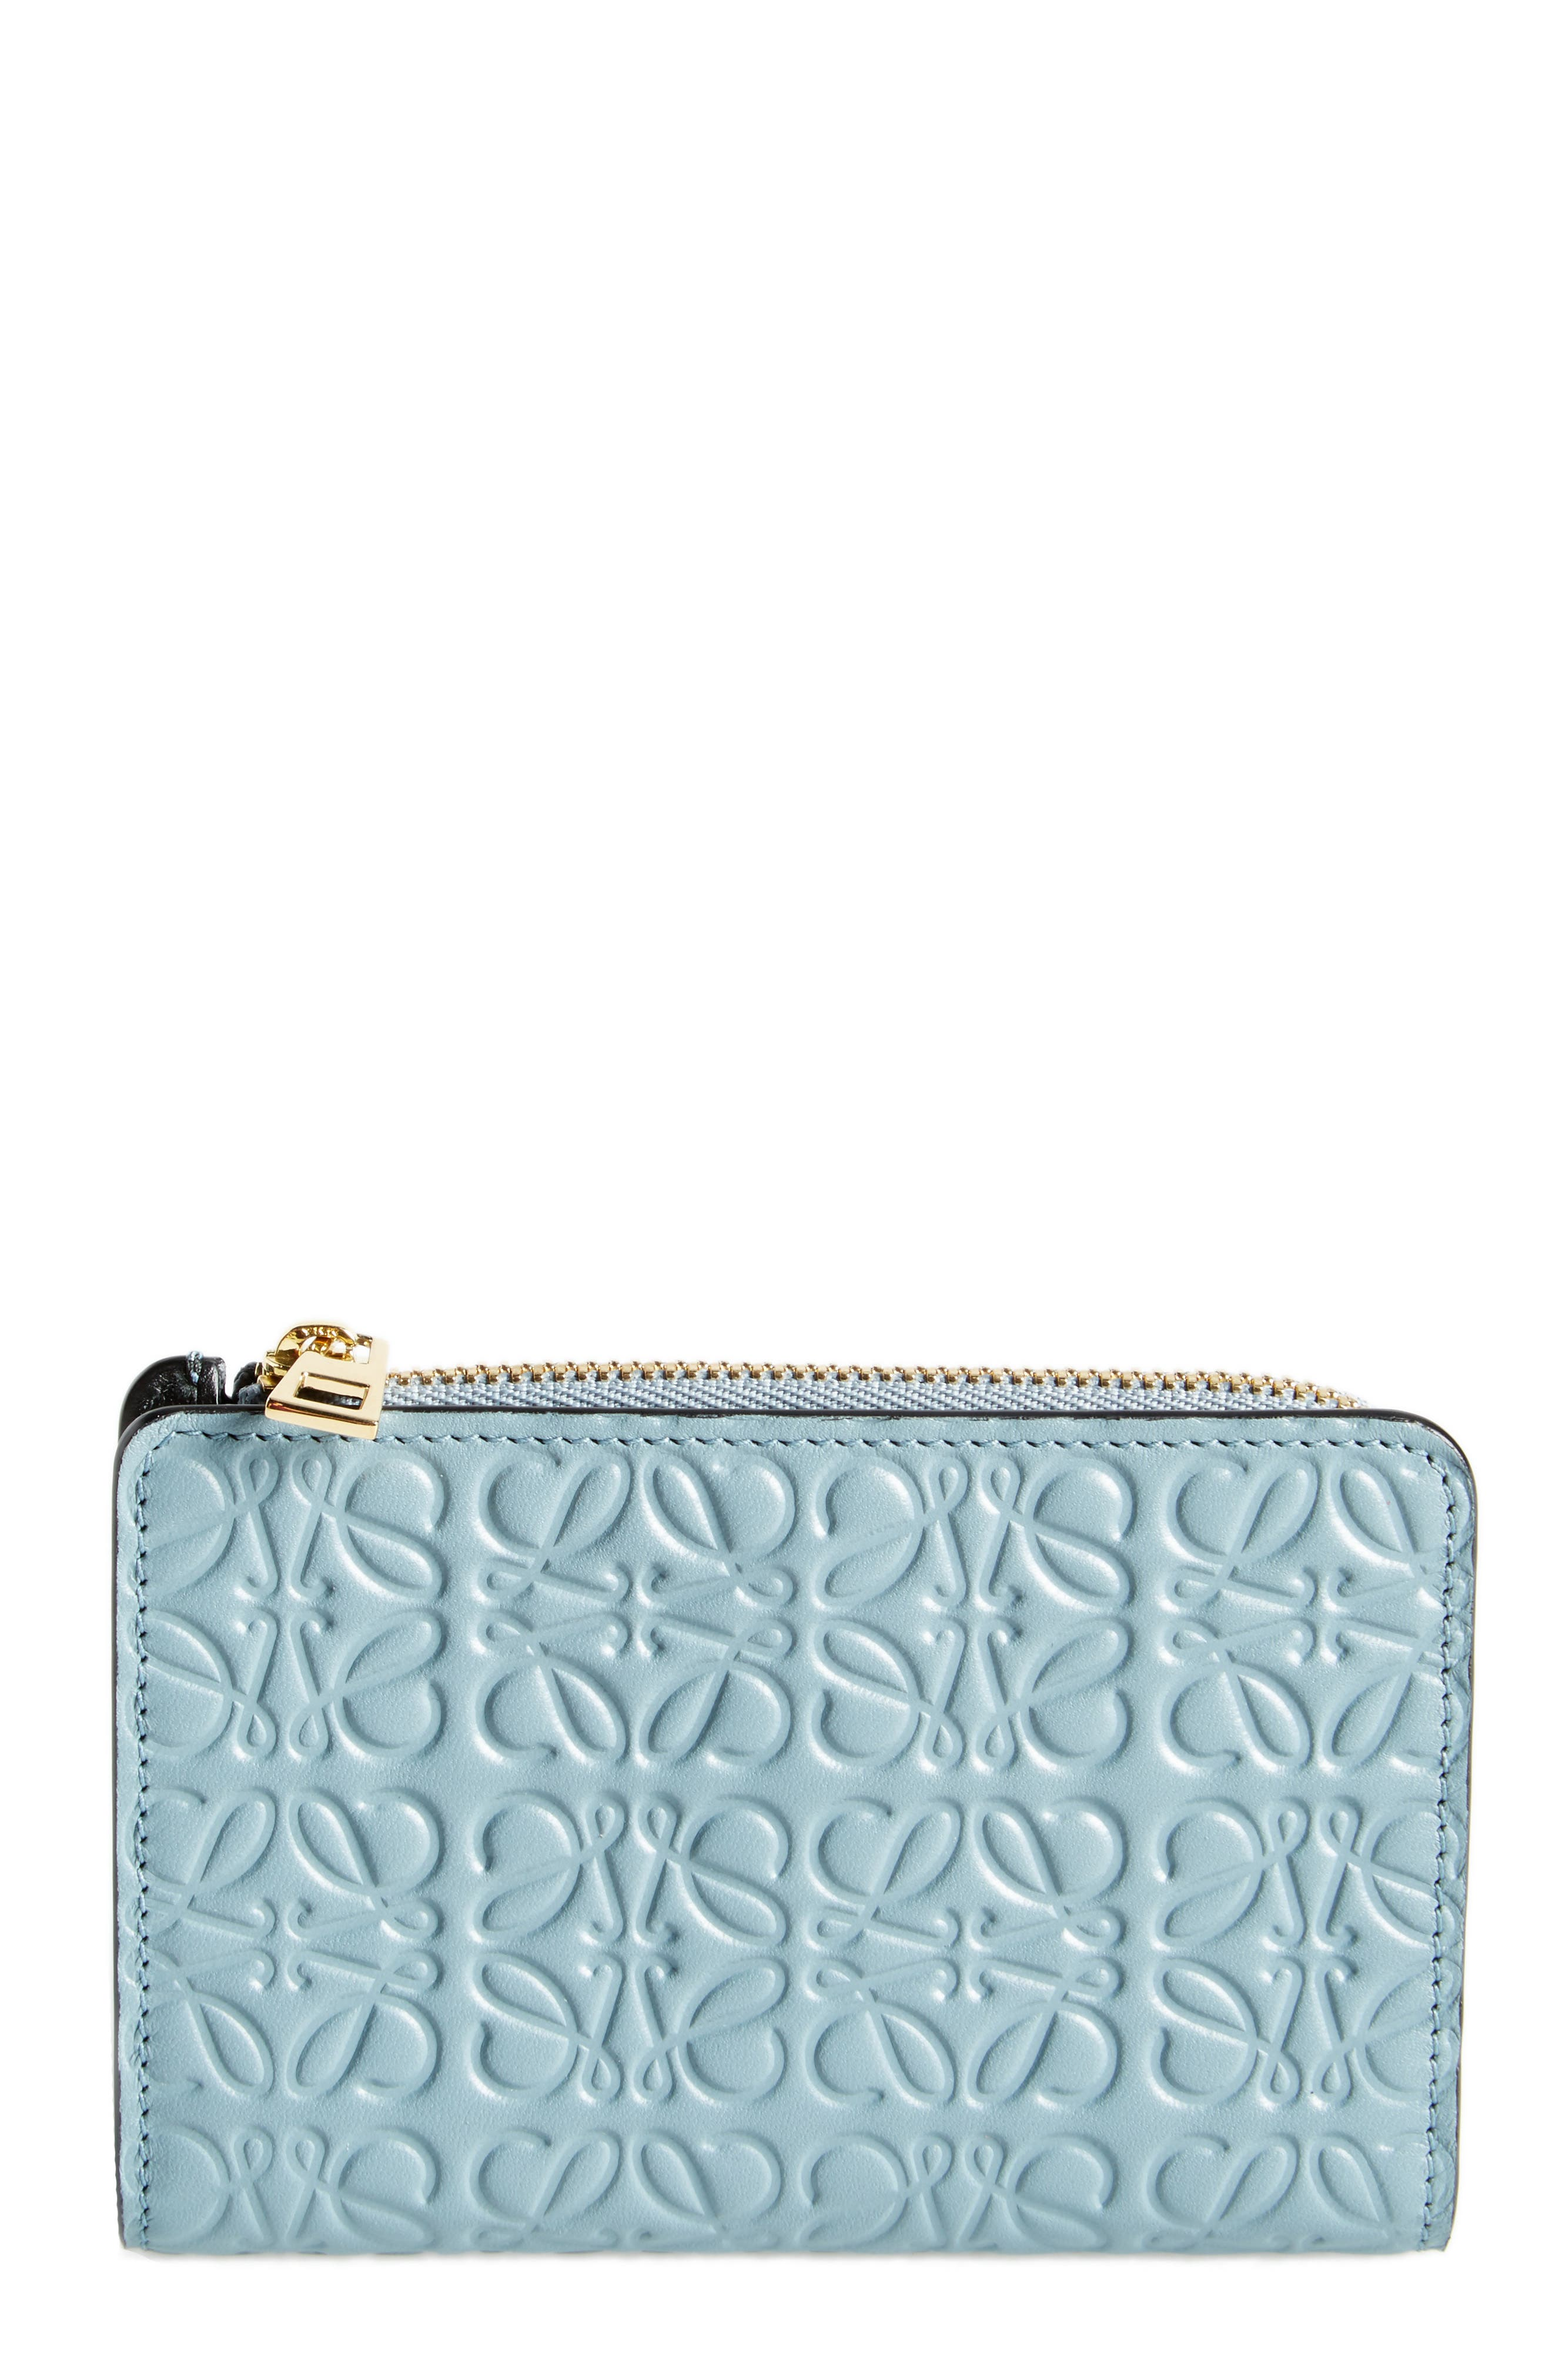 Small Leather Zip Wallet,                         Main,                         color, 421